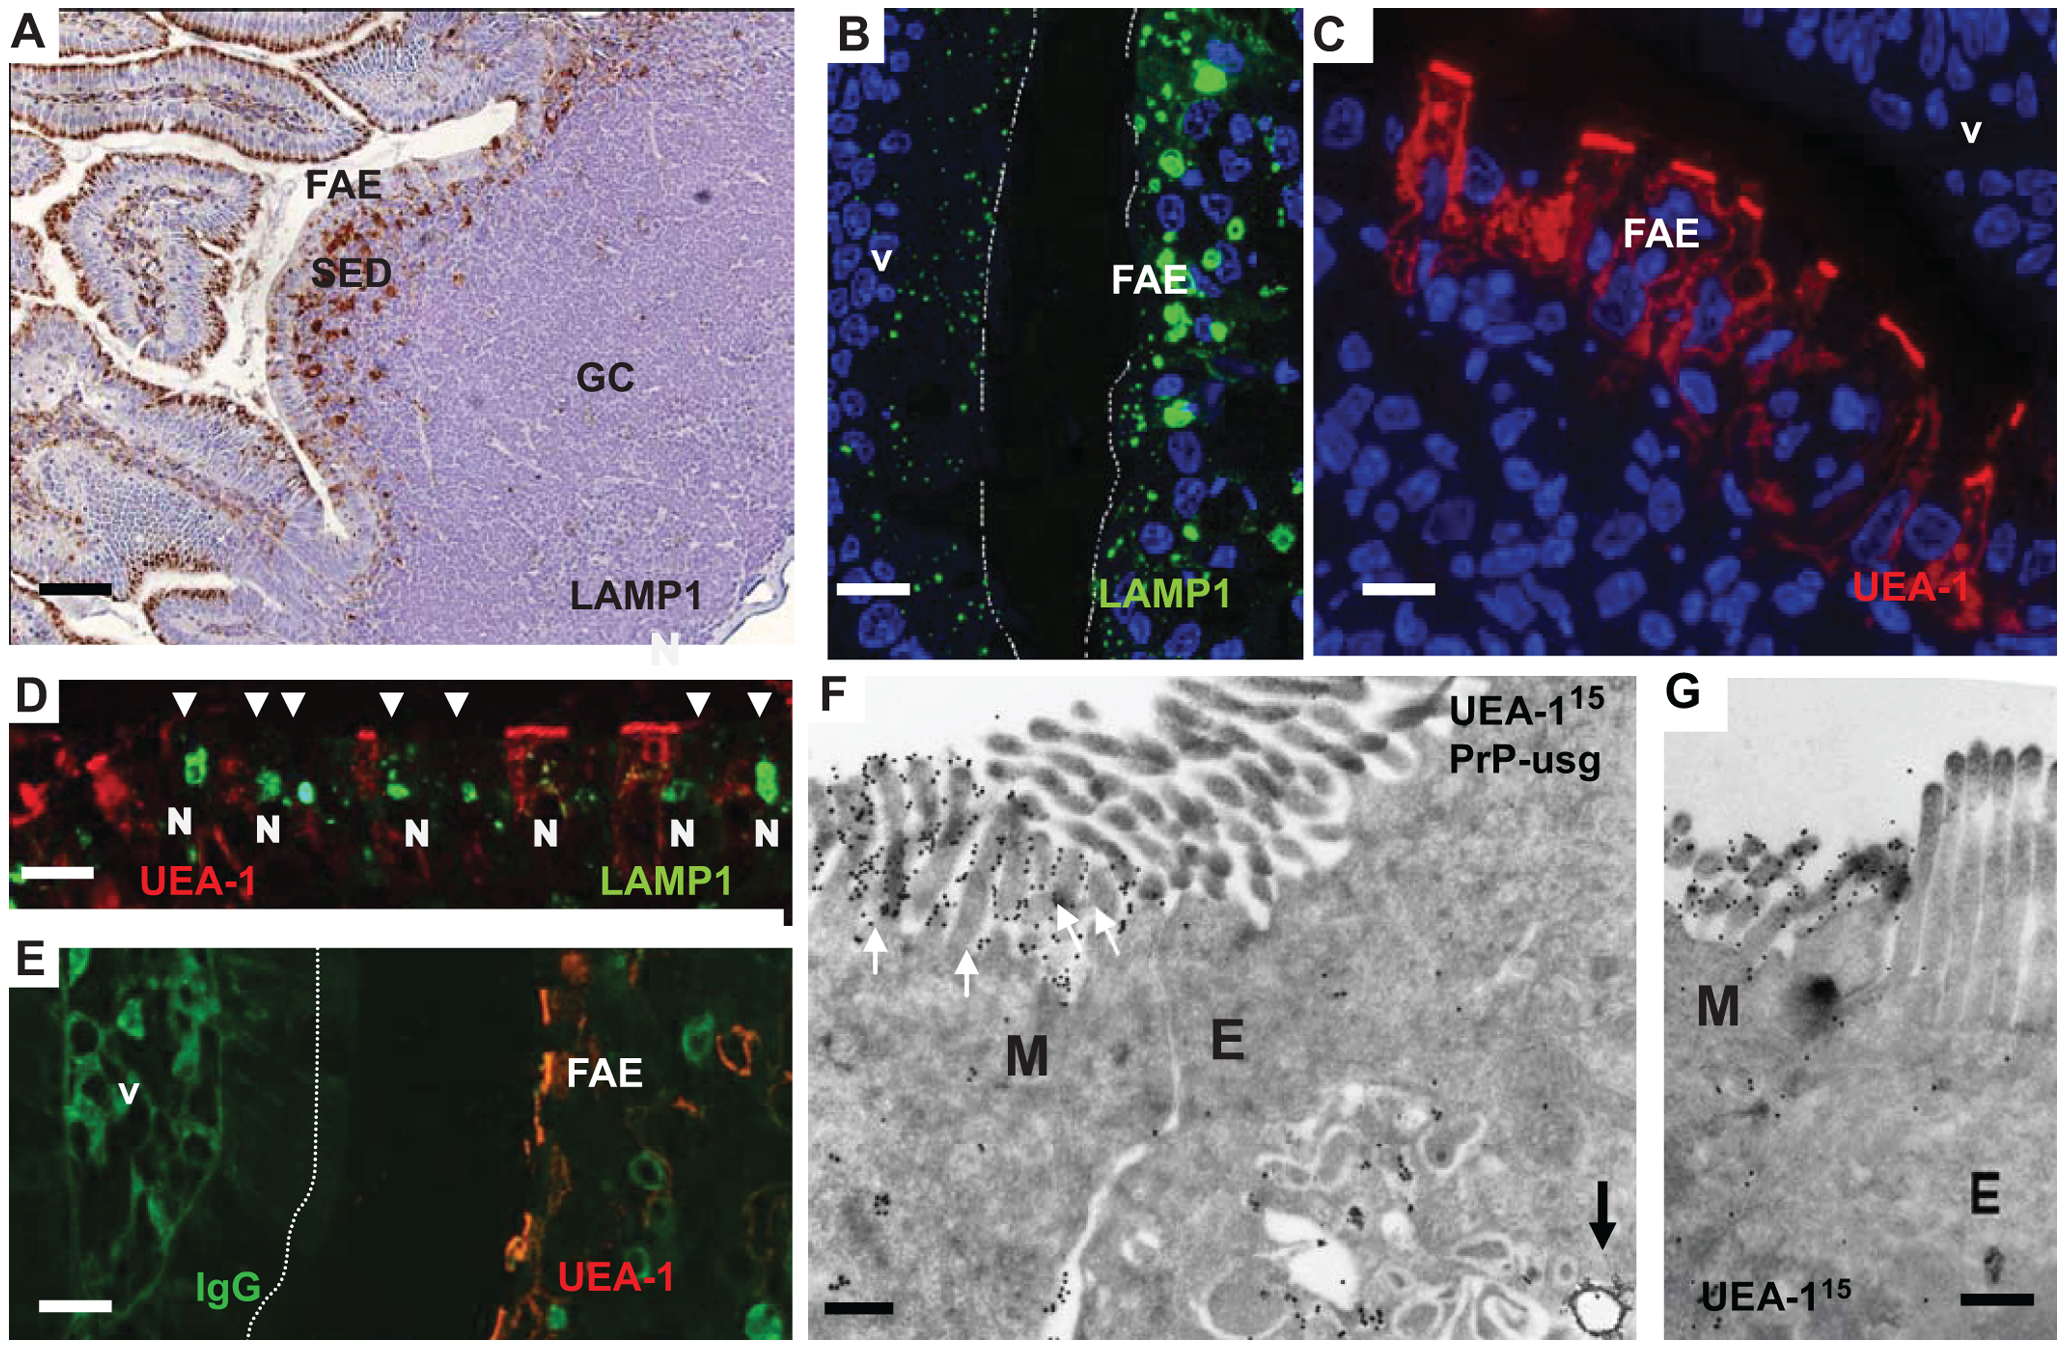 Follicle-associated epithelium (FAE) harbours enterocytes that have large apical late endosomal compartments and M cells.